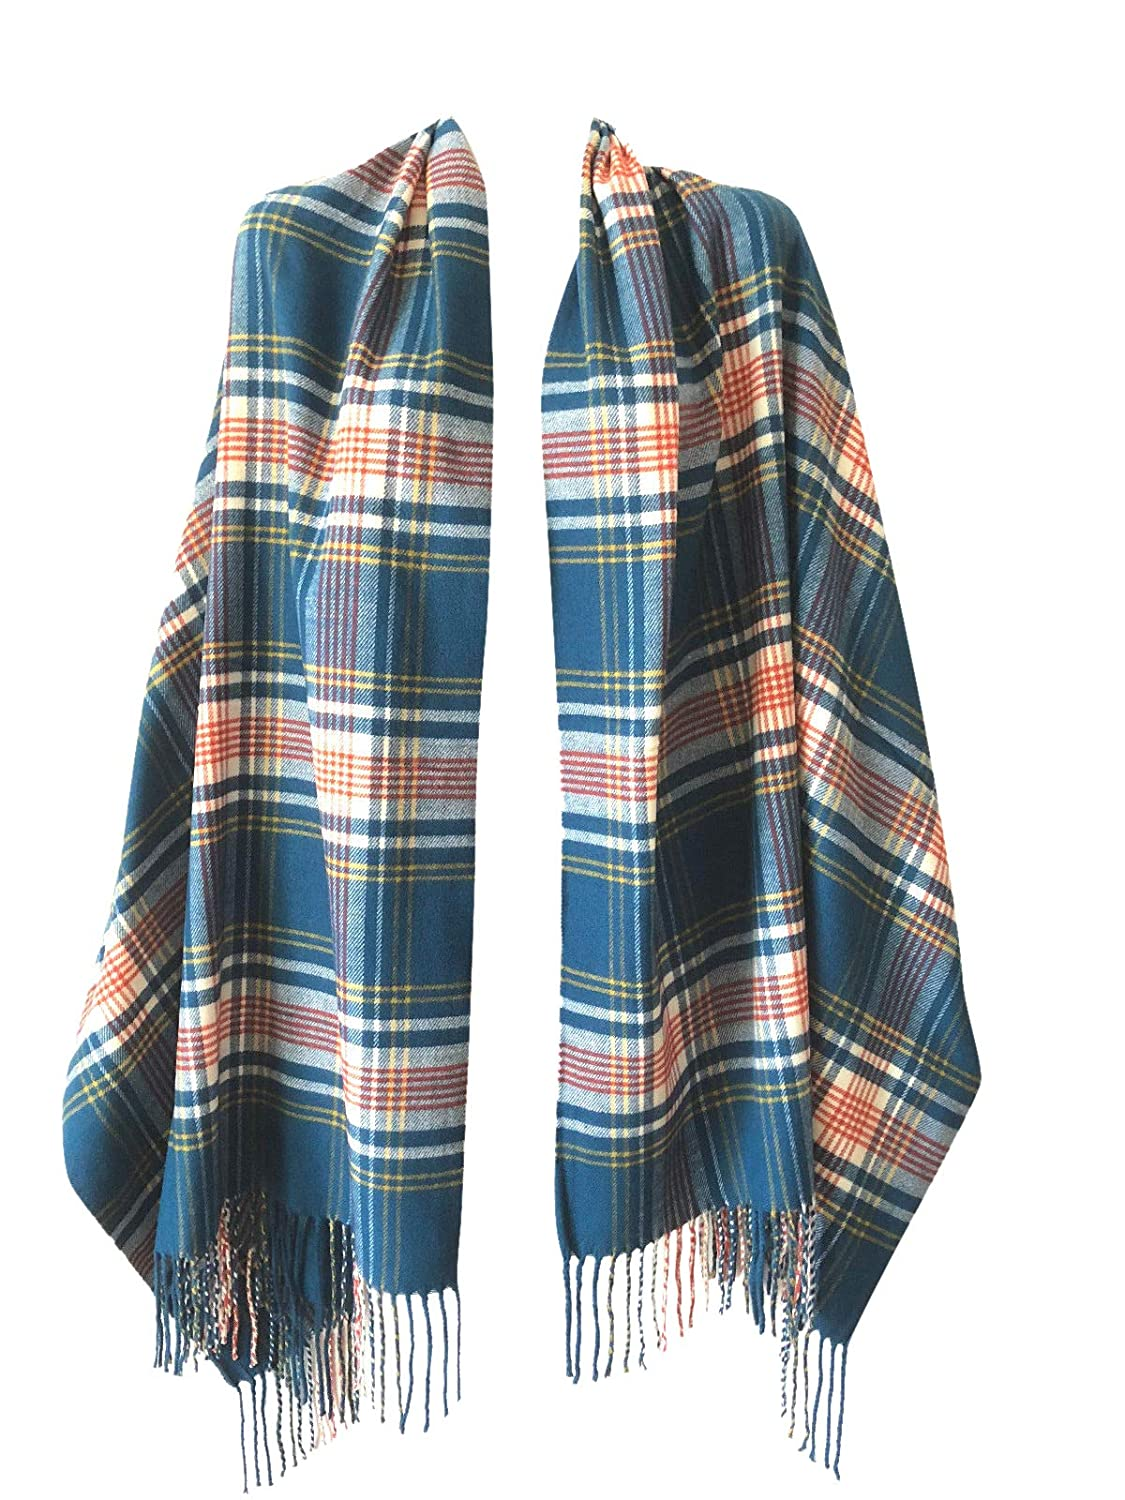 bluee orange Touch Plaid Women Oversized Scottish Clan Tartan Plaid Cashmere Feel Shawl Wrap Winter Scarf